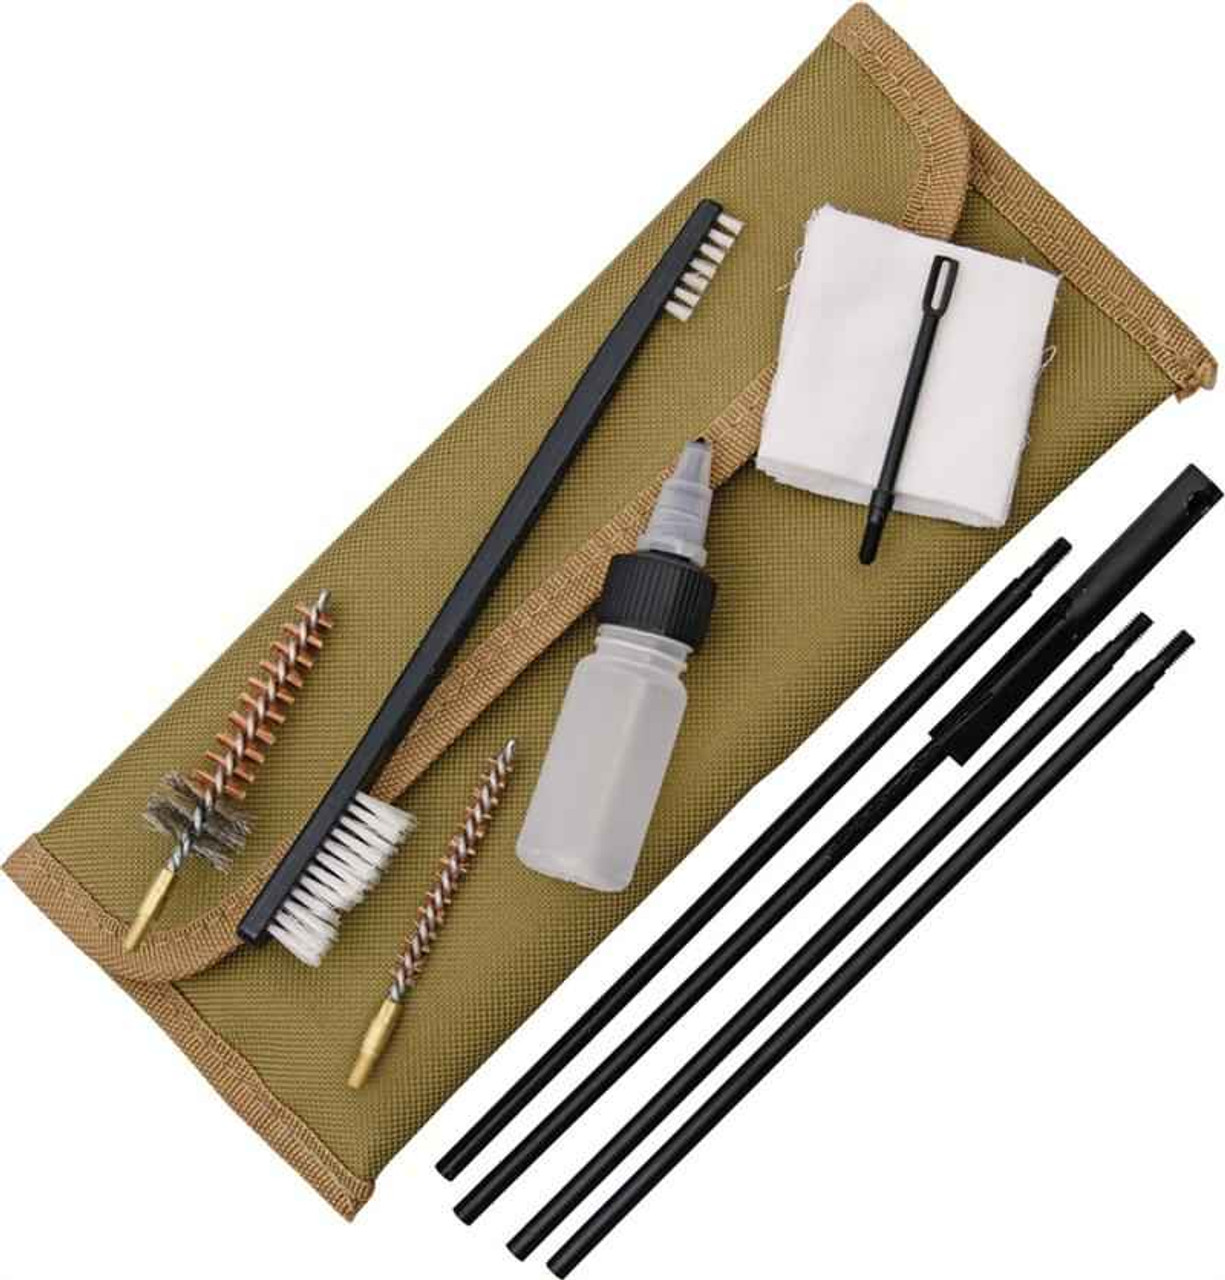 ABKT AB0035T Tac 5.56mm Gun Cleaning Kit, Coyote Tan Pouch